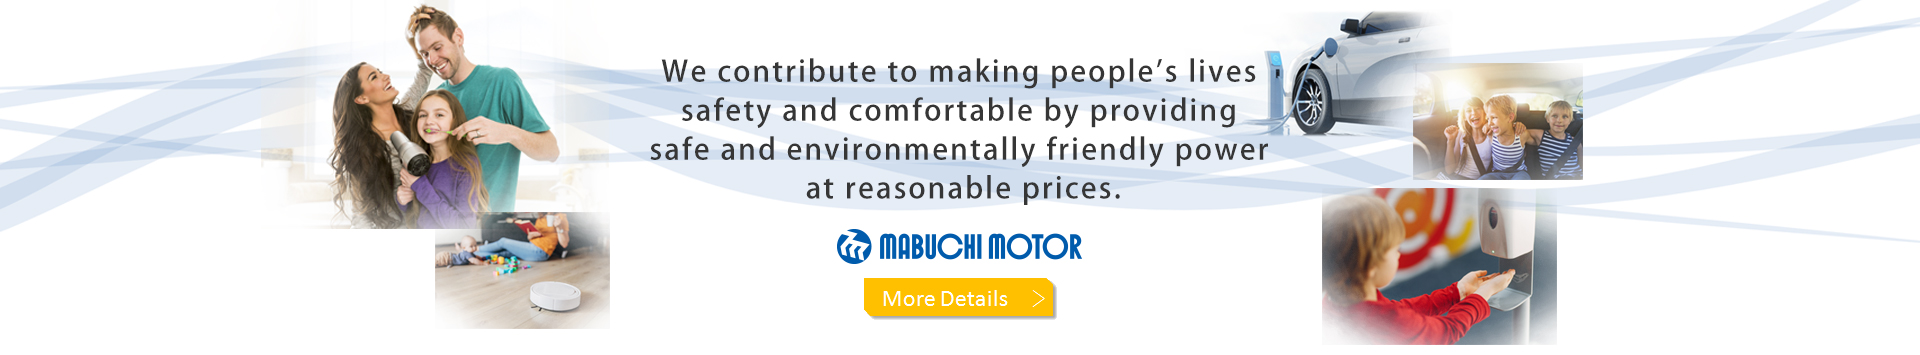 We create motive power to make the world revolve. Actuating Your Dreams MABUCHI MOTOR